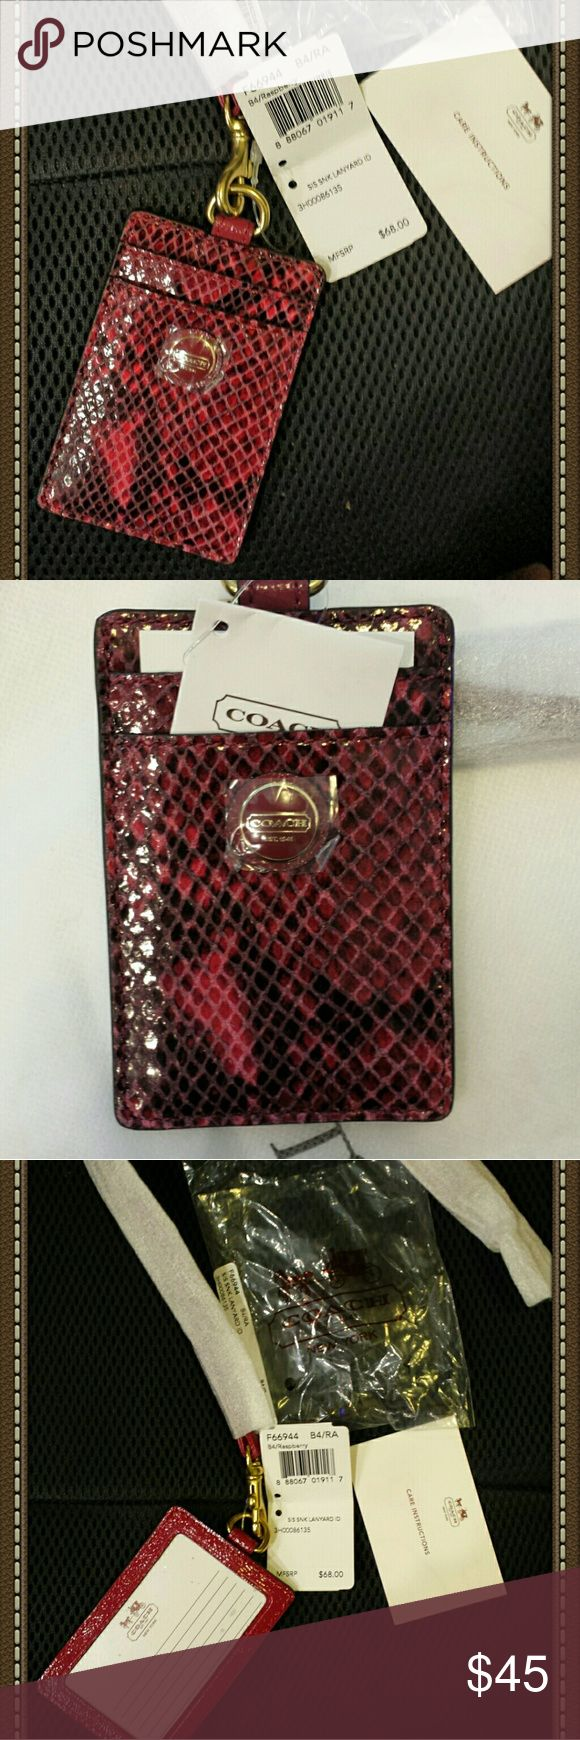 NWT COACH Snake Skin Embossed Leather ID Landyard NWT, RARE COACH Snake Skin Embossed Leather ID Landyard. Front side has the Coach emblem with 3 credit card slots. Flip side has ID slot w plastic cover. This Landyard is one of the hardest find design n color. Raspberry. Coach Accessories Key & Card Holders